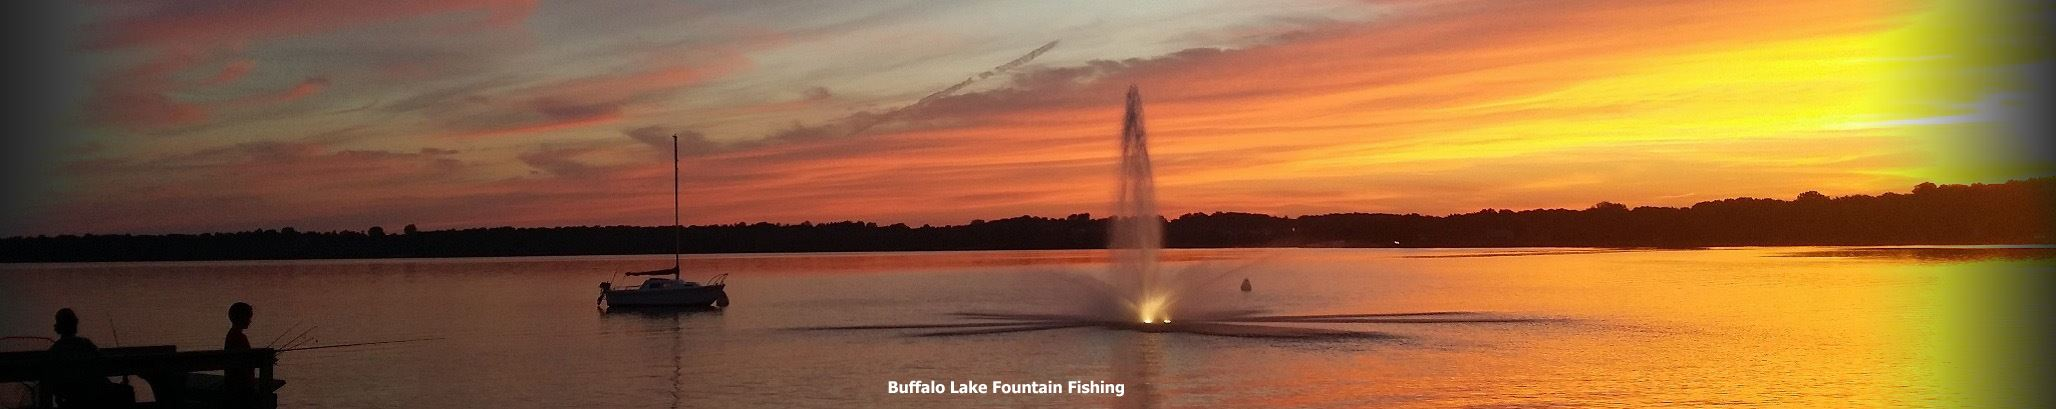 Wright County, MN - Official Website | Official Website